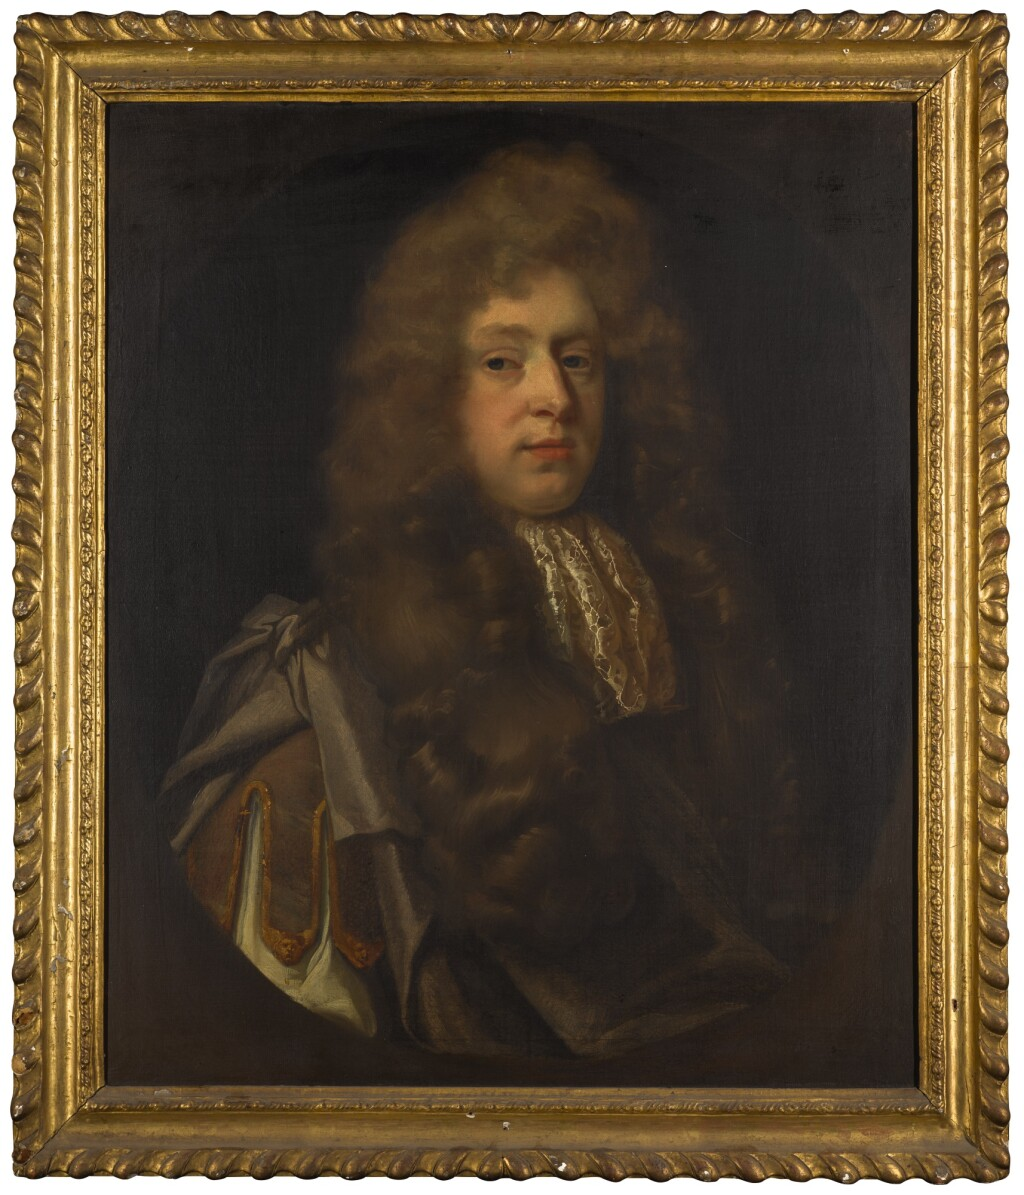 JOHN RILEY | Portrait of a gentleman, half-length, wearing purple robes